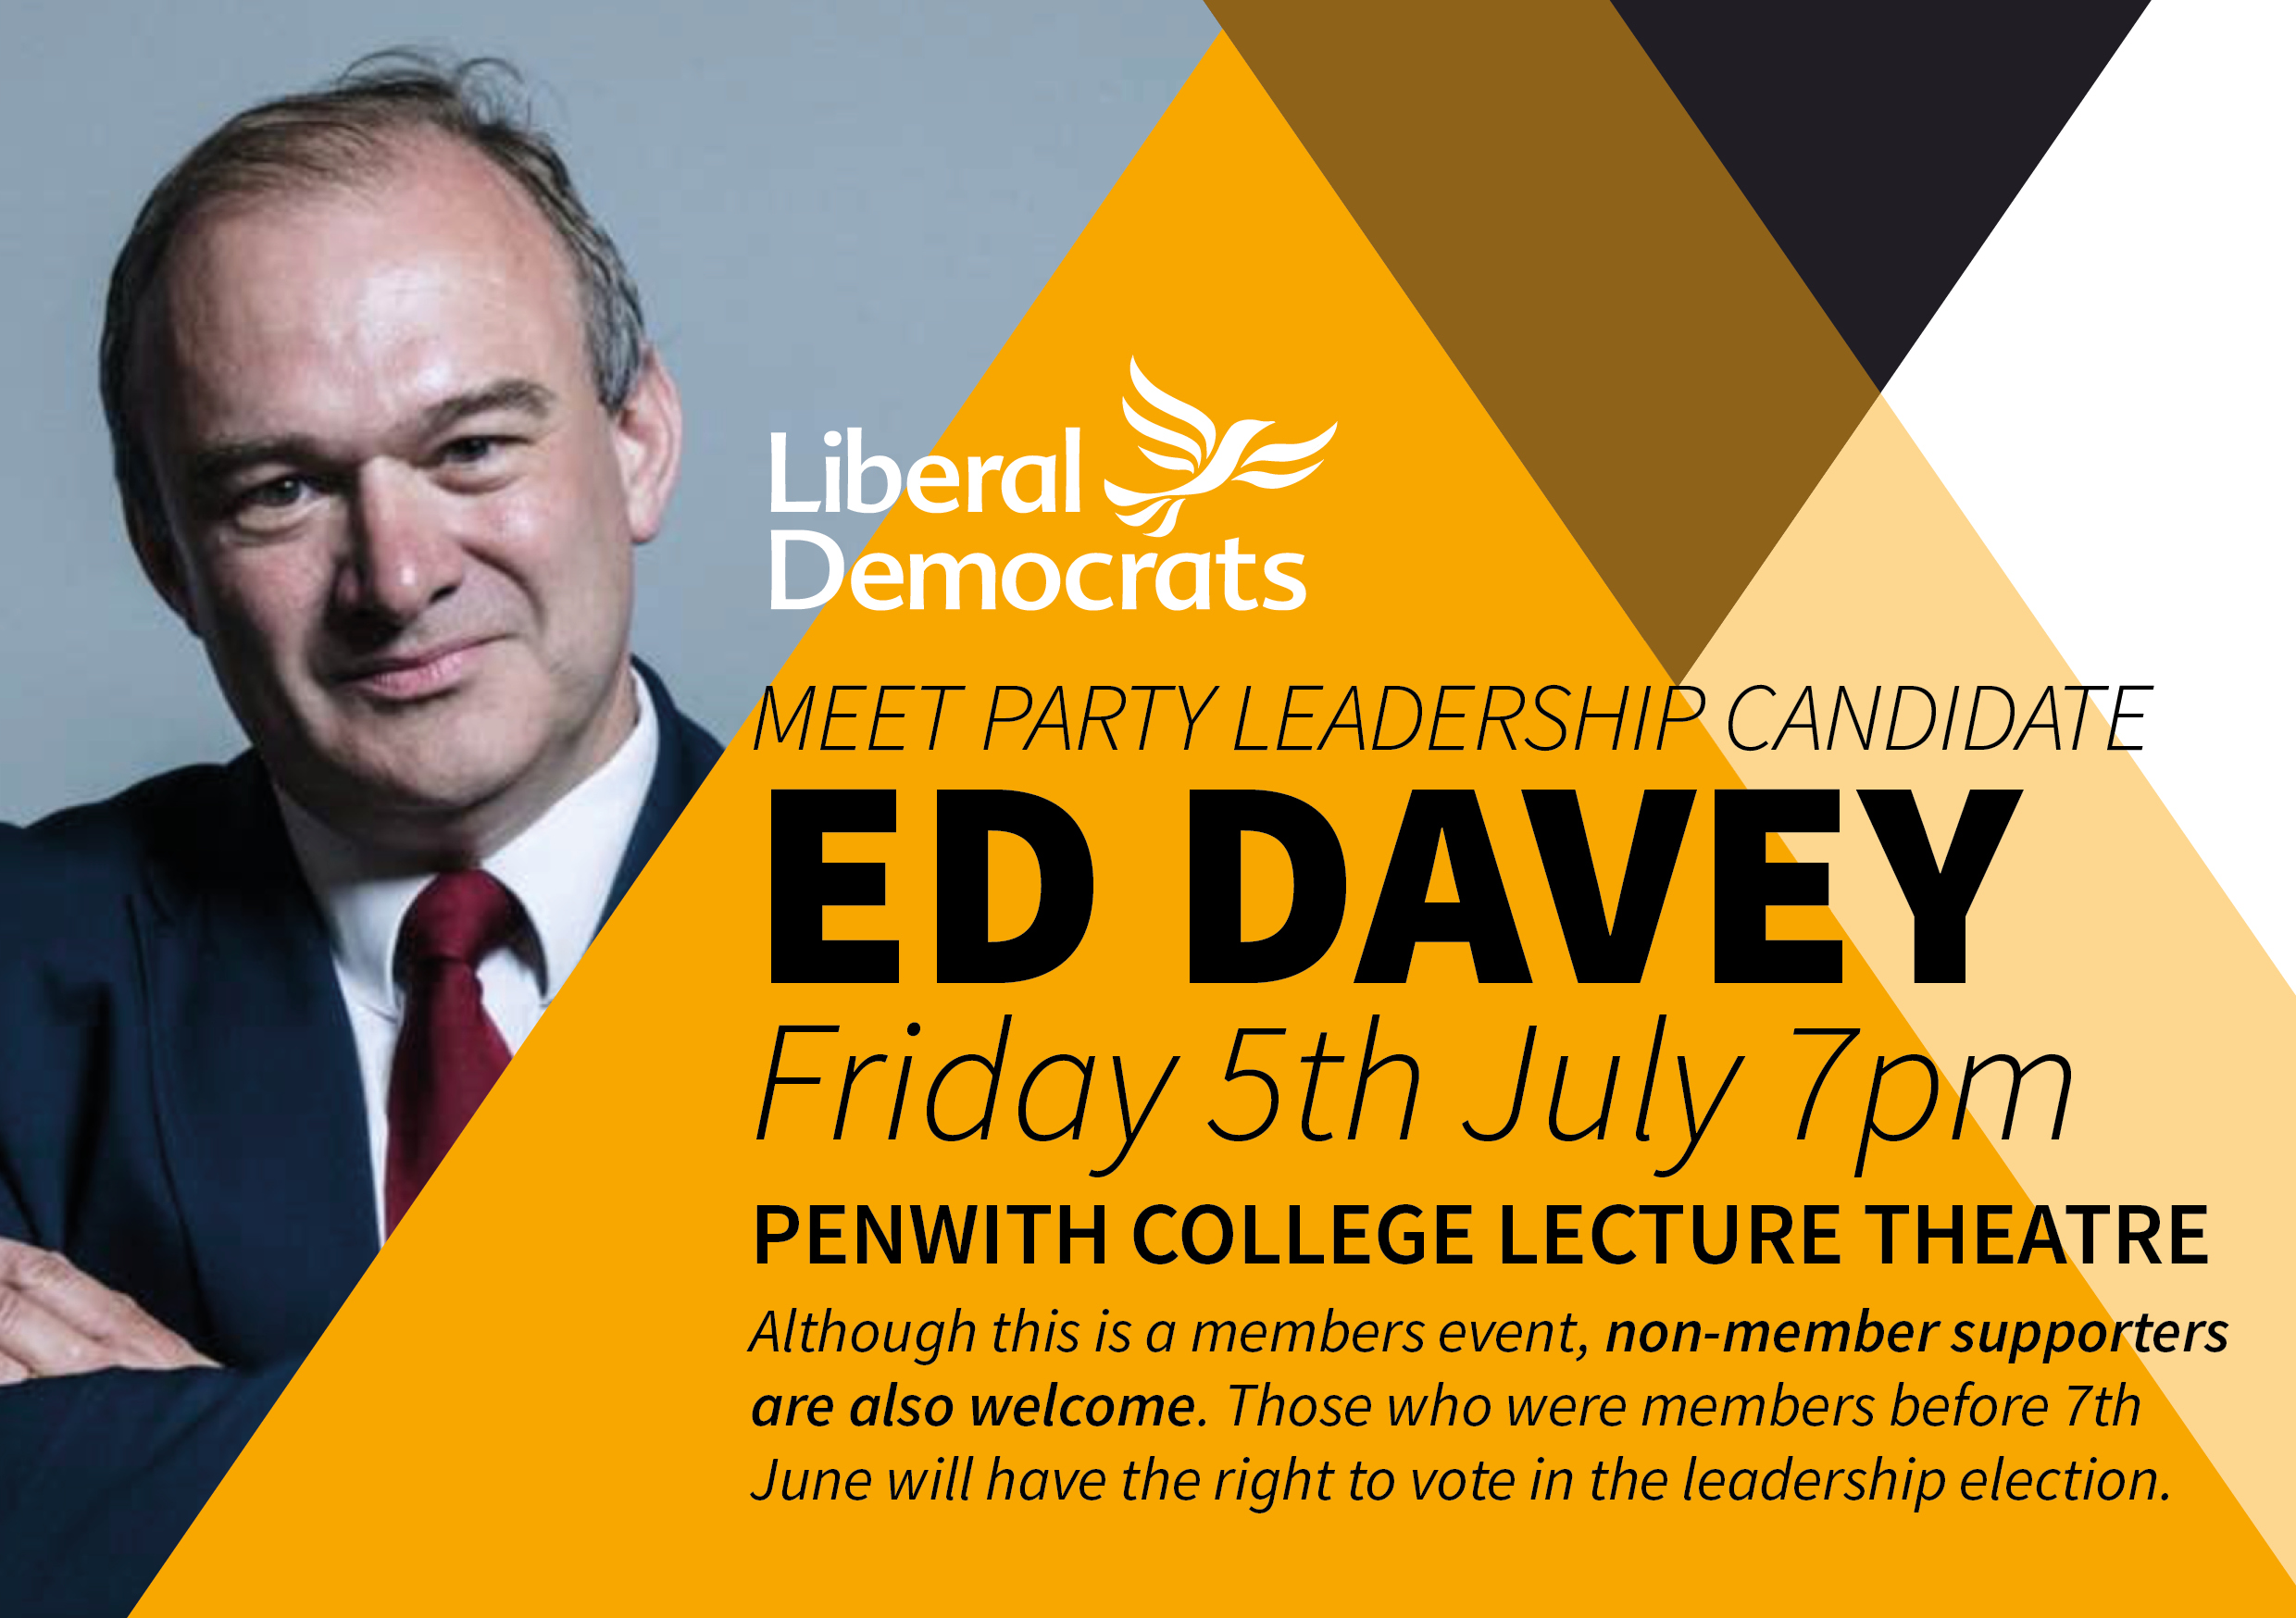 Meet Party Leadership Candidate Ed Davey.  Friday 5th July 7pm in Penwith College lecture theatre.  Although this is a members event, non-member supporters are also welcome. Those who were members before 7th June will have the right to vote in the election.